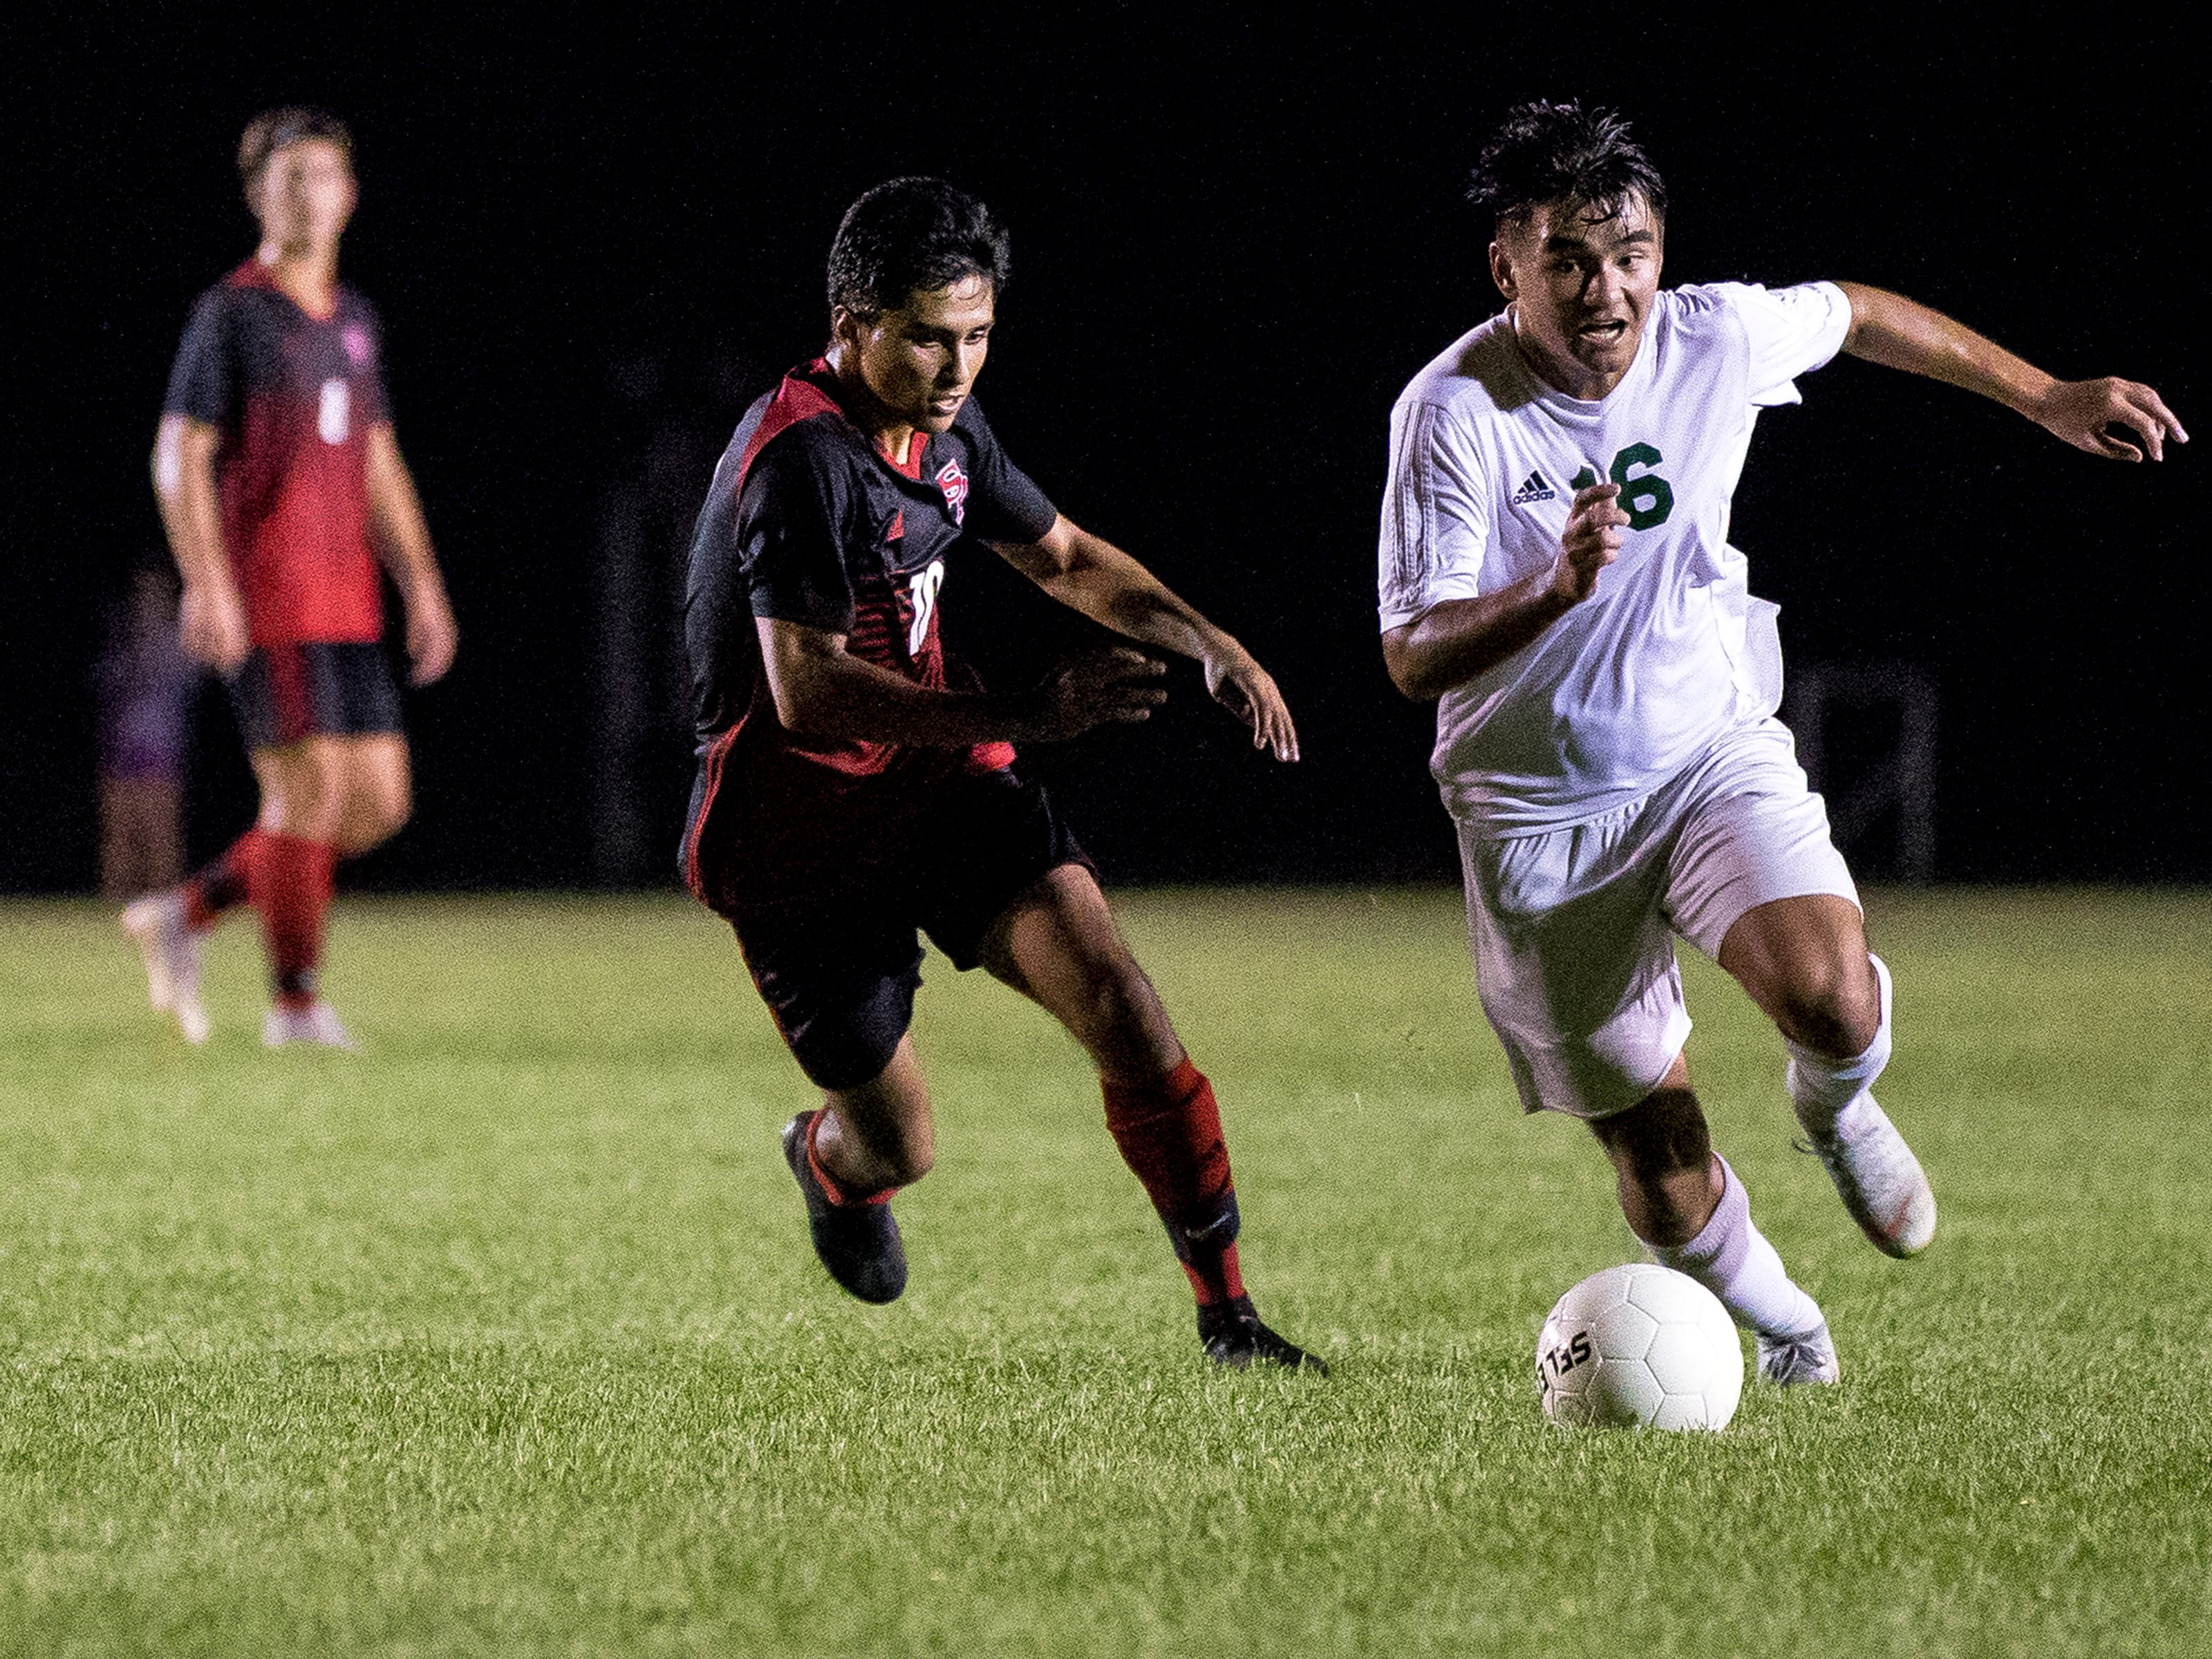 D.C. Everest's Jordan Thao dribbles down field trailed by Ricky Perez of SPASH during a soccer game between SPASH and D.C. Everest in Stevens Point, Wis., September 13, 2018.